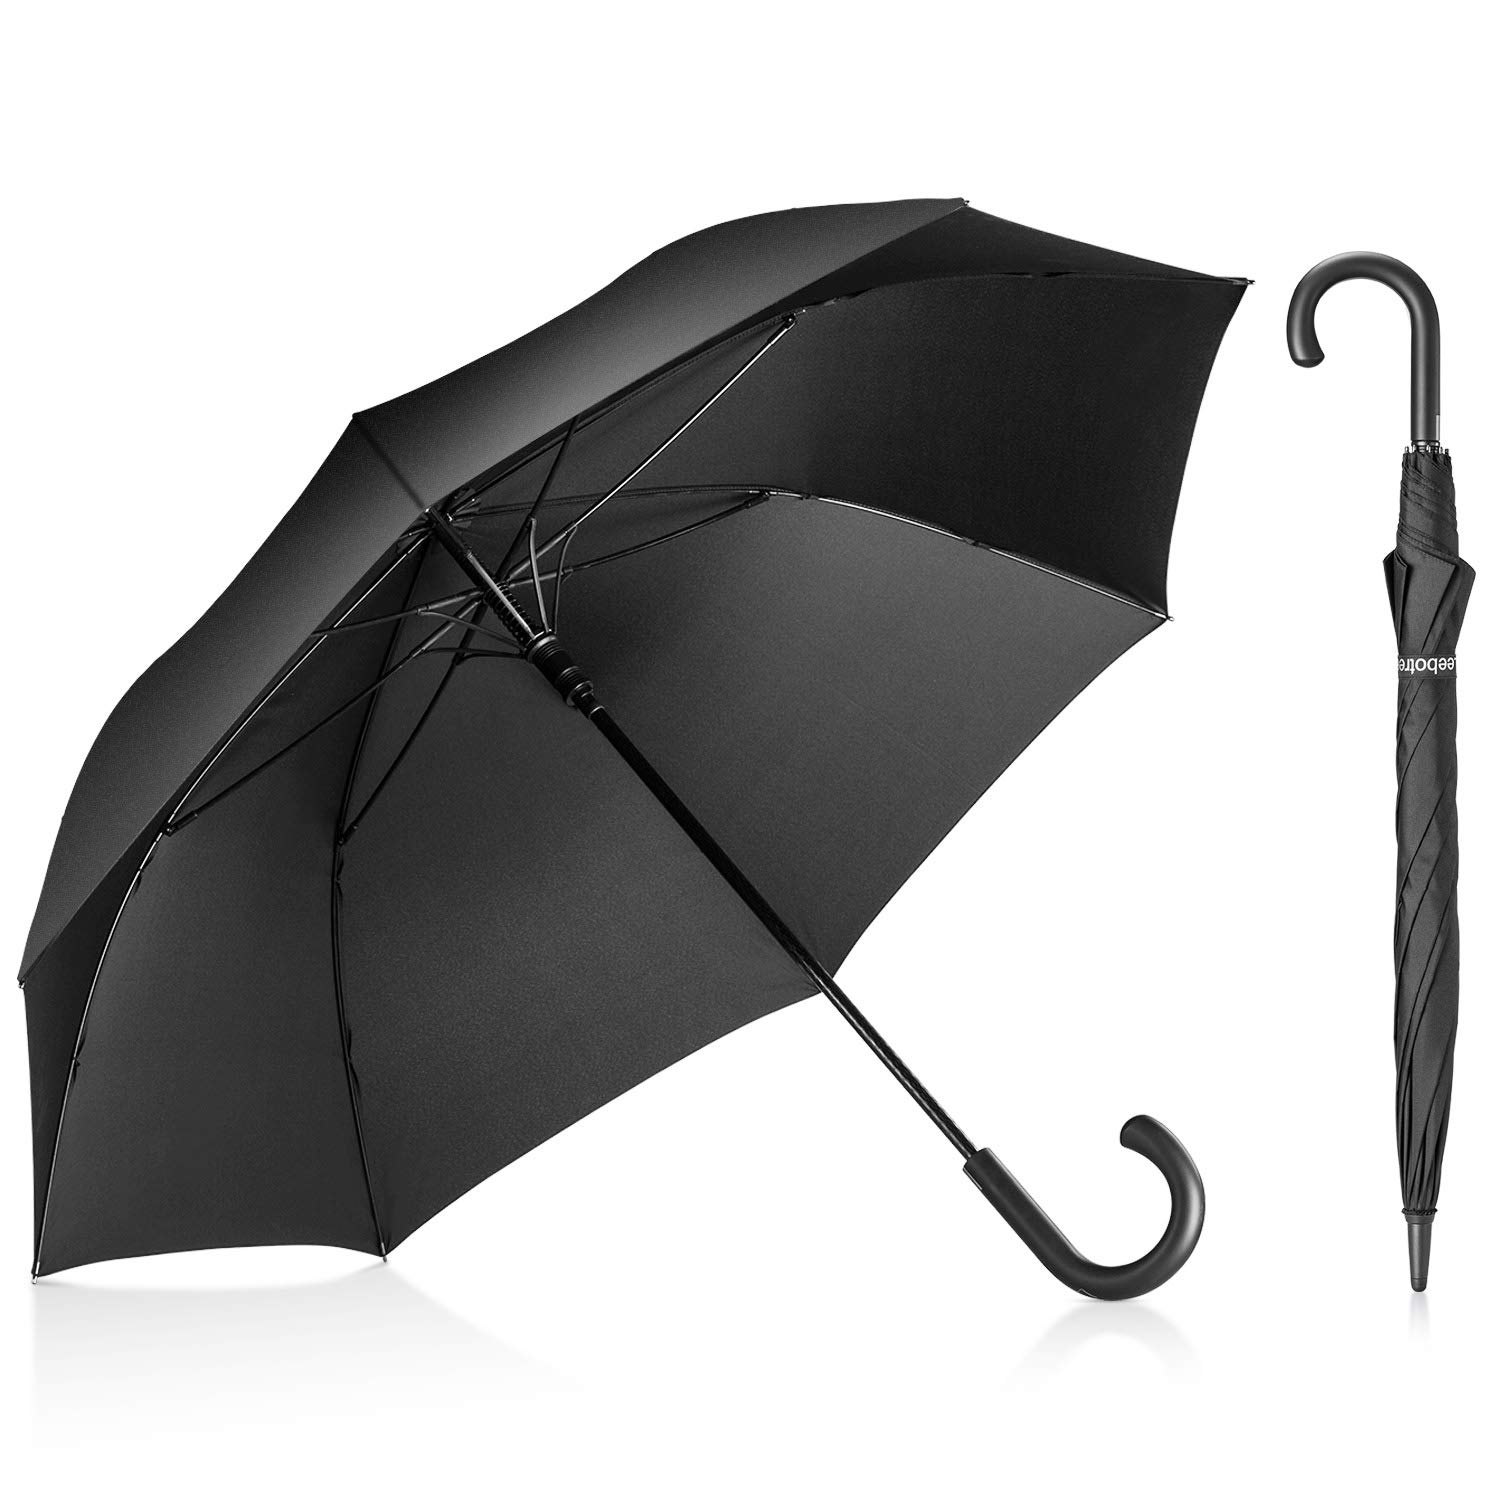 Leebotree Stick Umbrella, Auto Open Windproof Umbrella with 51 Inch Large Canopy Waterproof and J Handle for Men Women (Black) by Leebotree